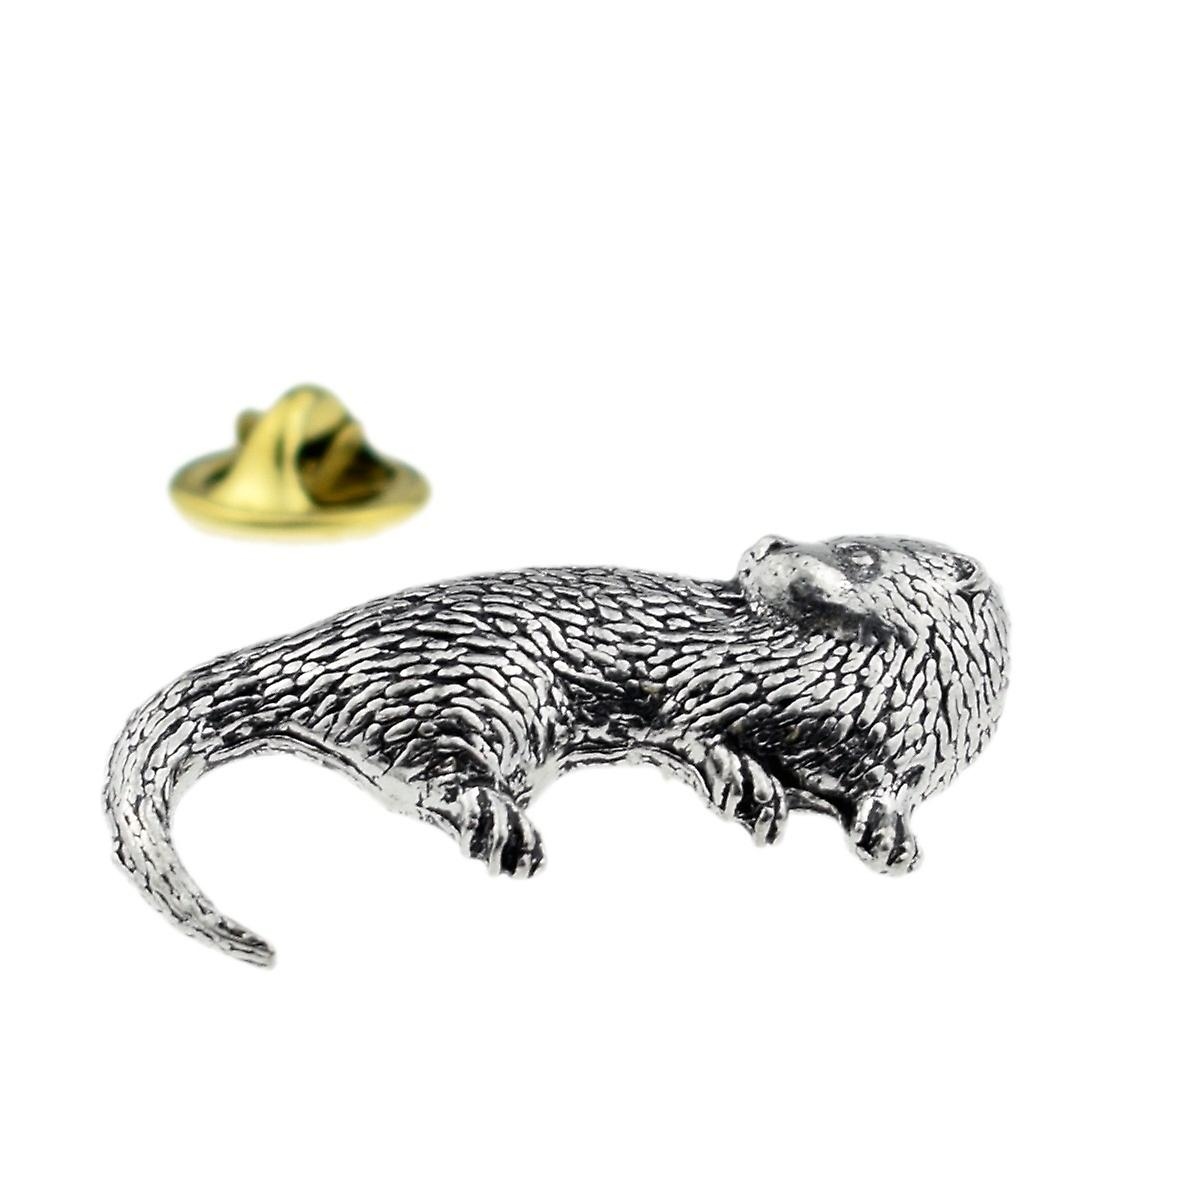 Otter English Pewter Lapel Pin Badge